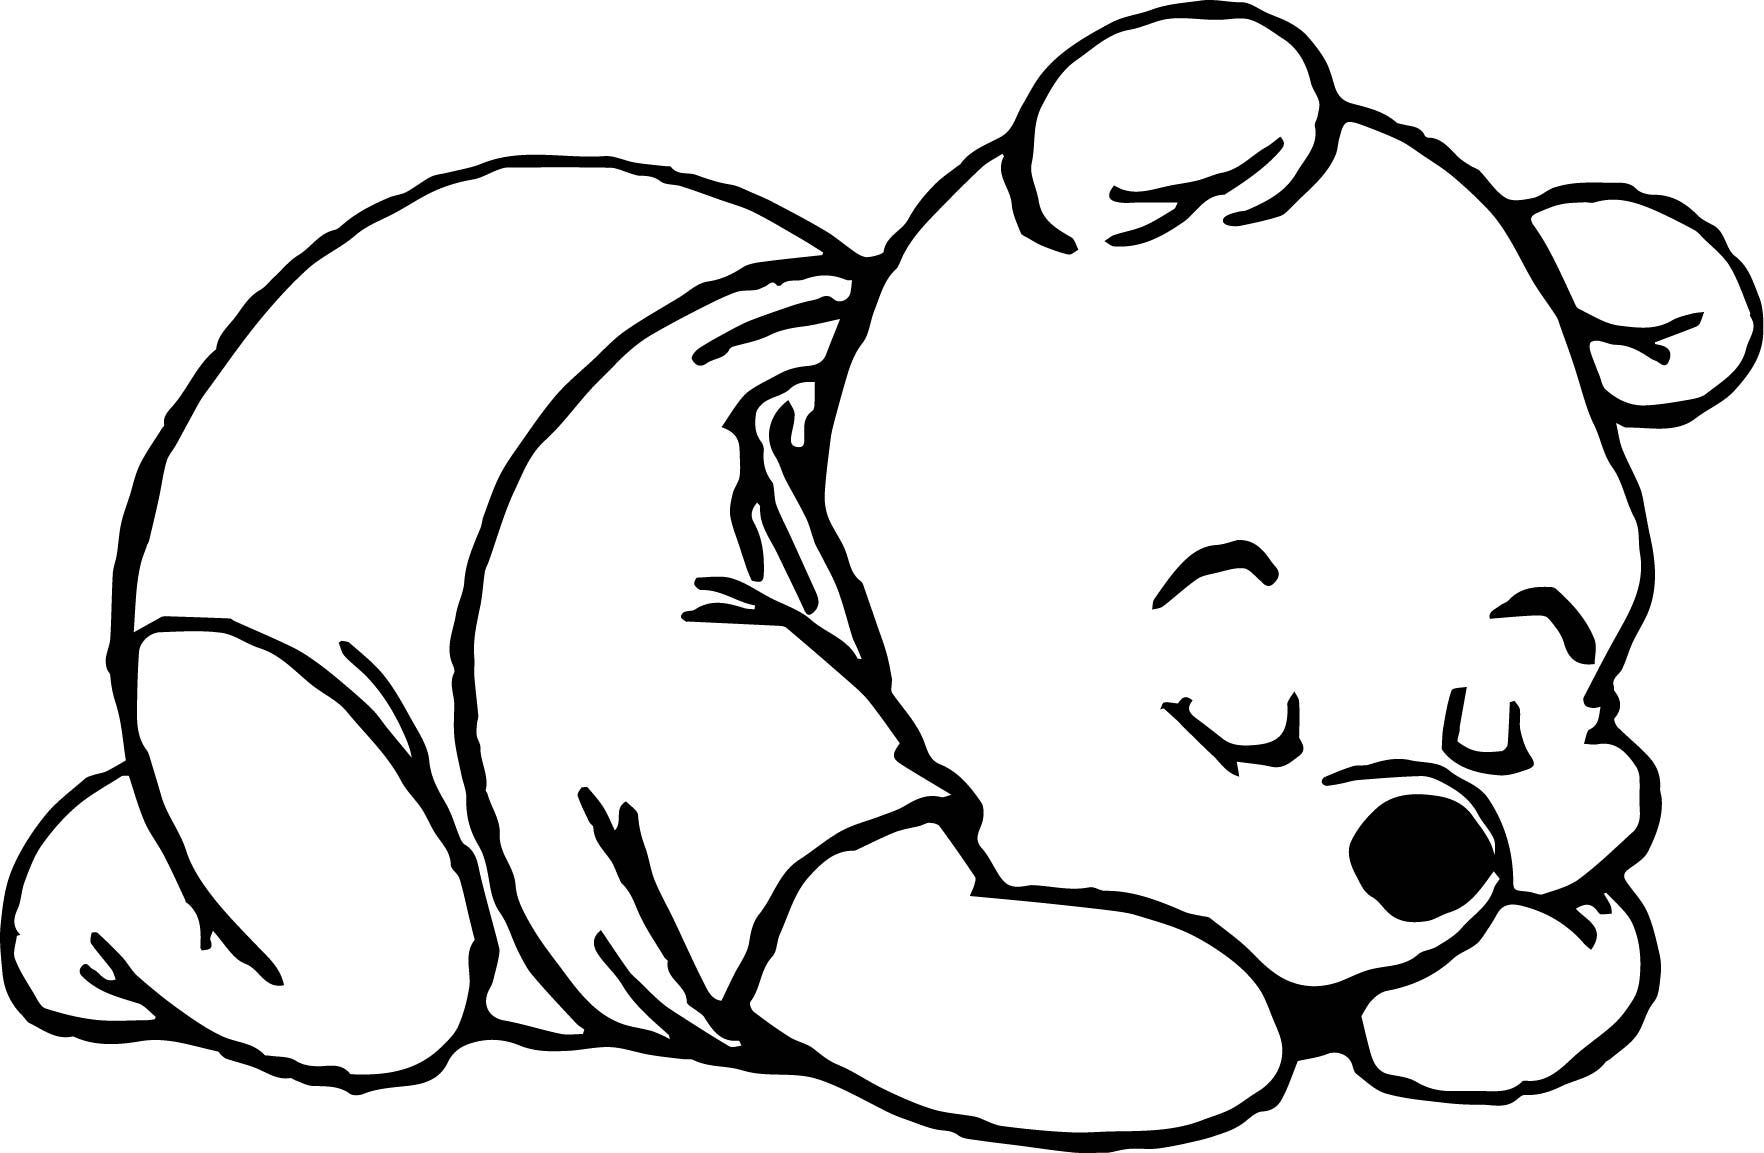 Cool Sleep Baby Pooh Coloring Page Bear Coloring Pages Animal Coloring Pages Stitch Coloring Pages